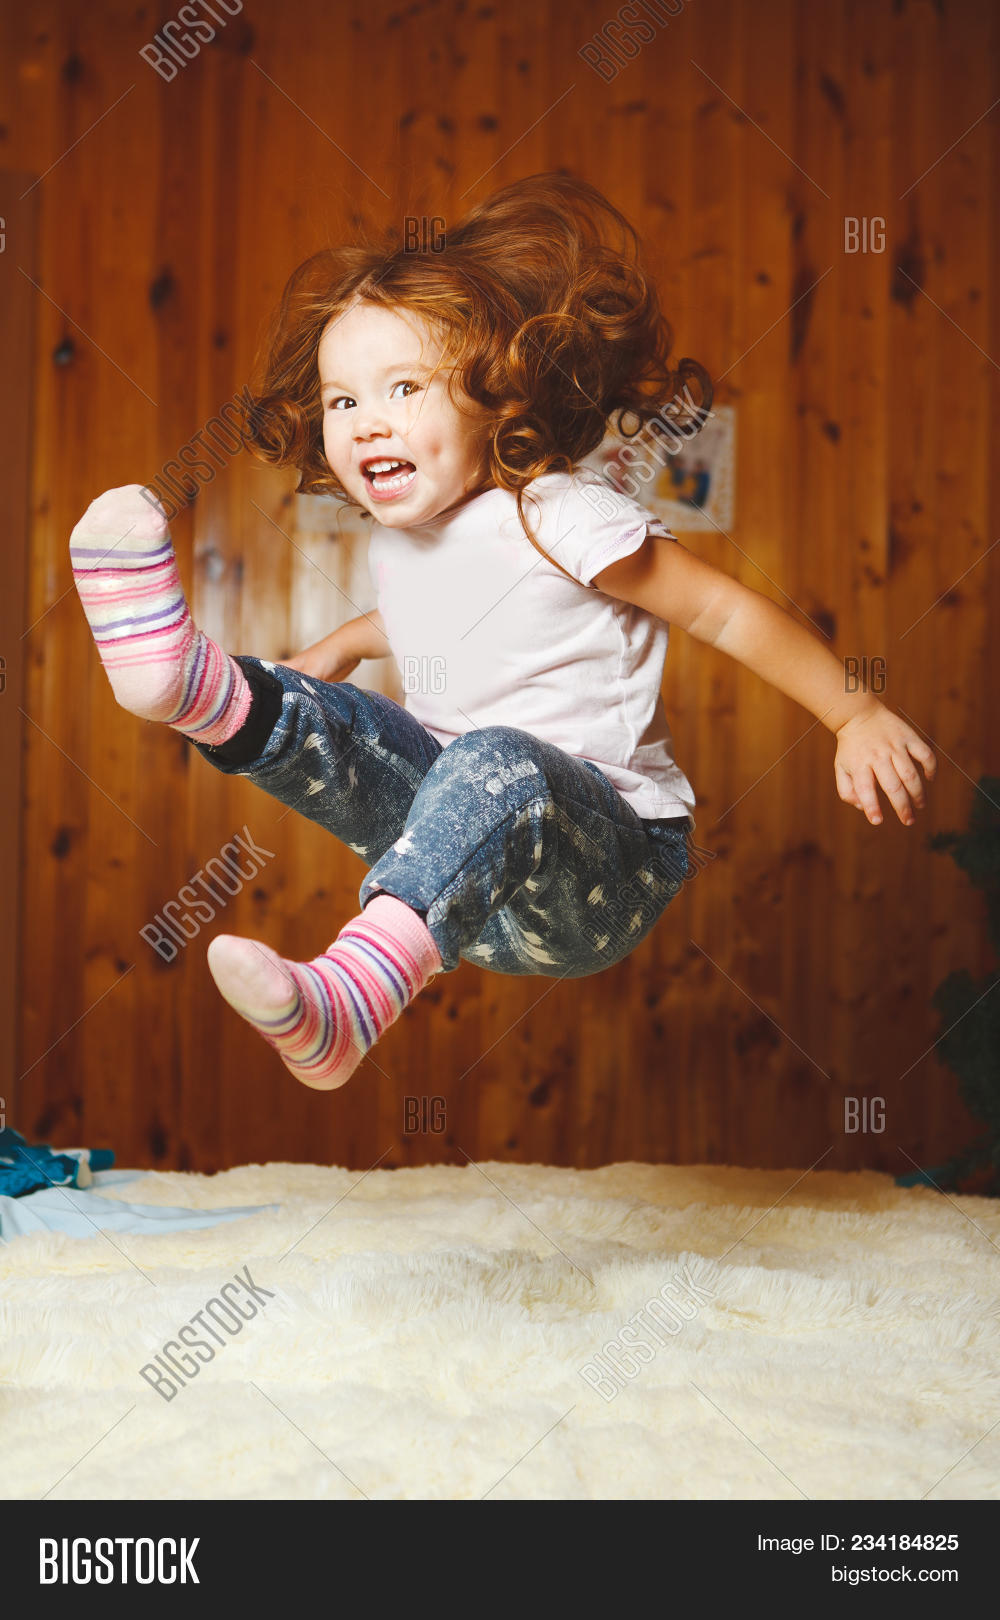 Funny Baby Jumping On The Bed Portrait Of Joyful Girl With Red Hair On The